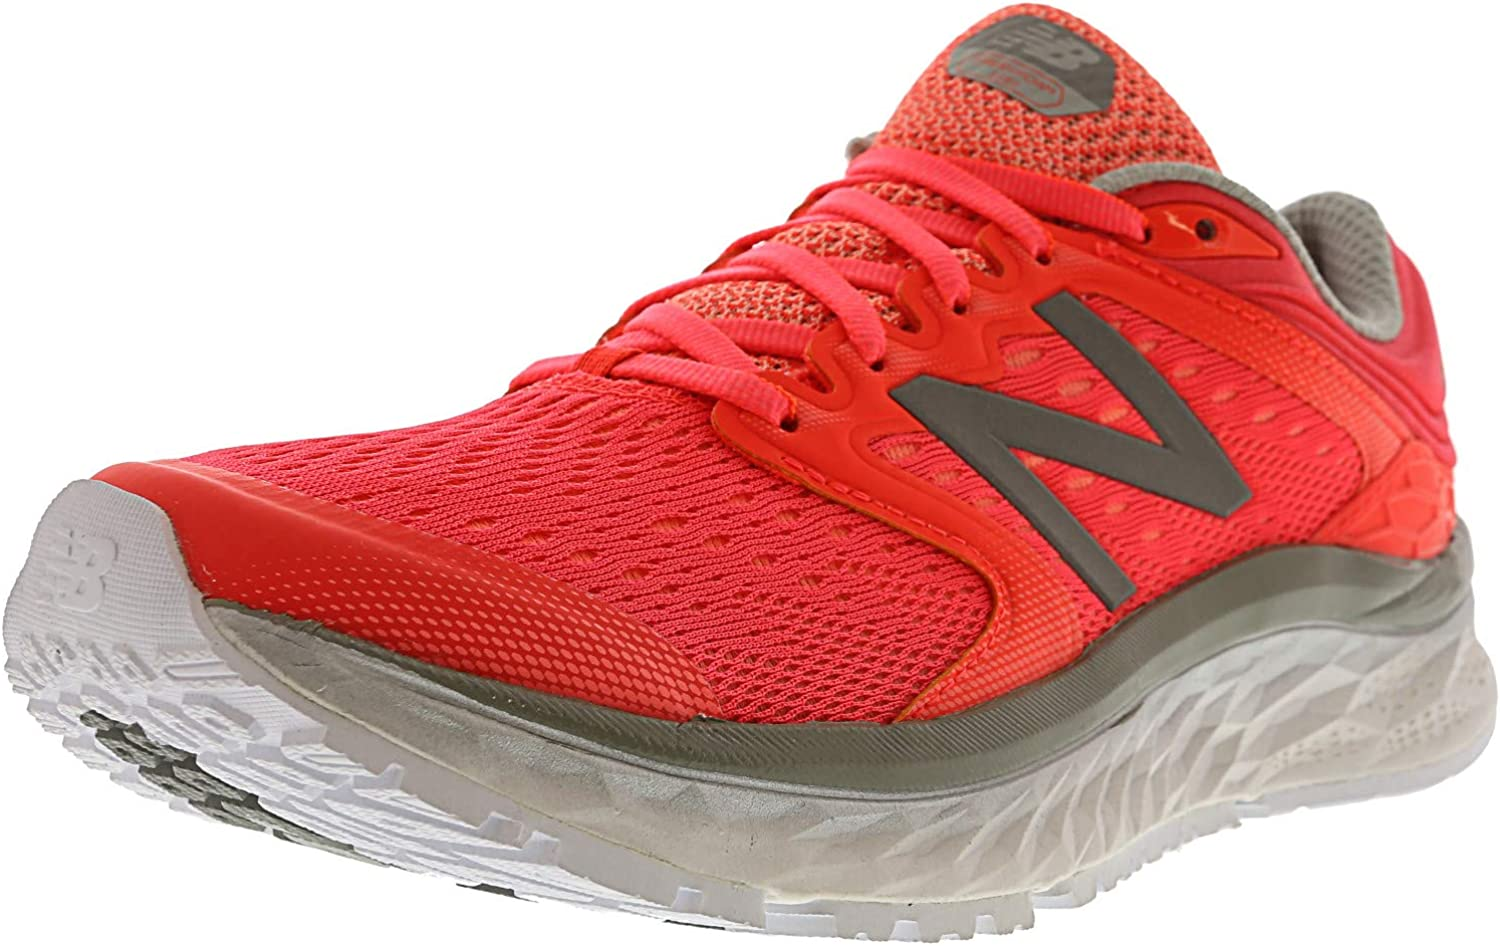 montón Mártir Umeki  Shopping > new balance 1060 replacement, Up to 76% OFF